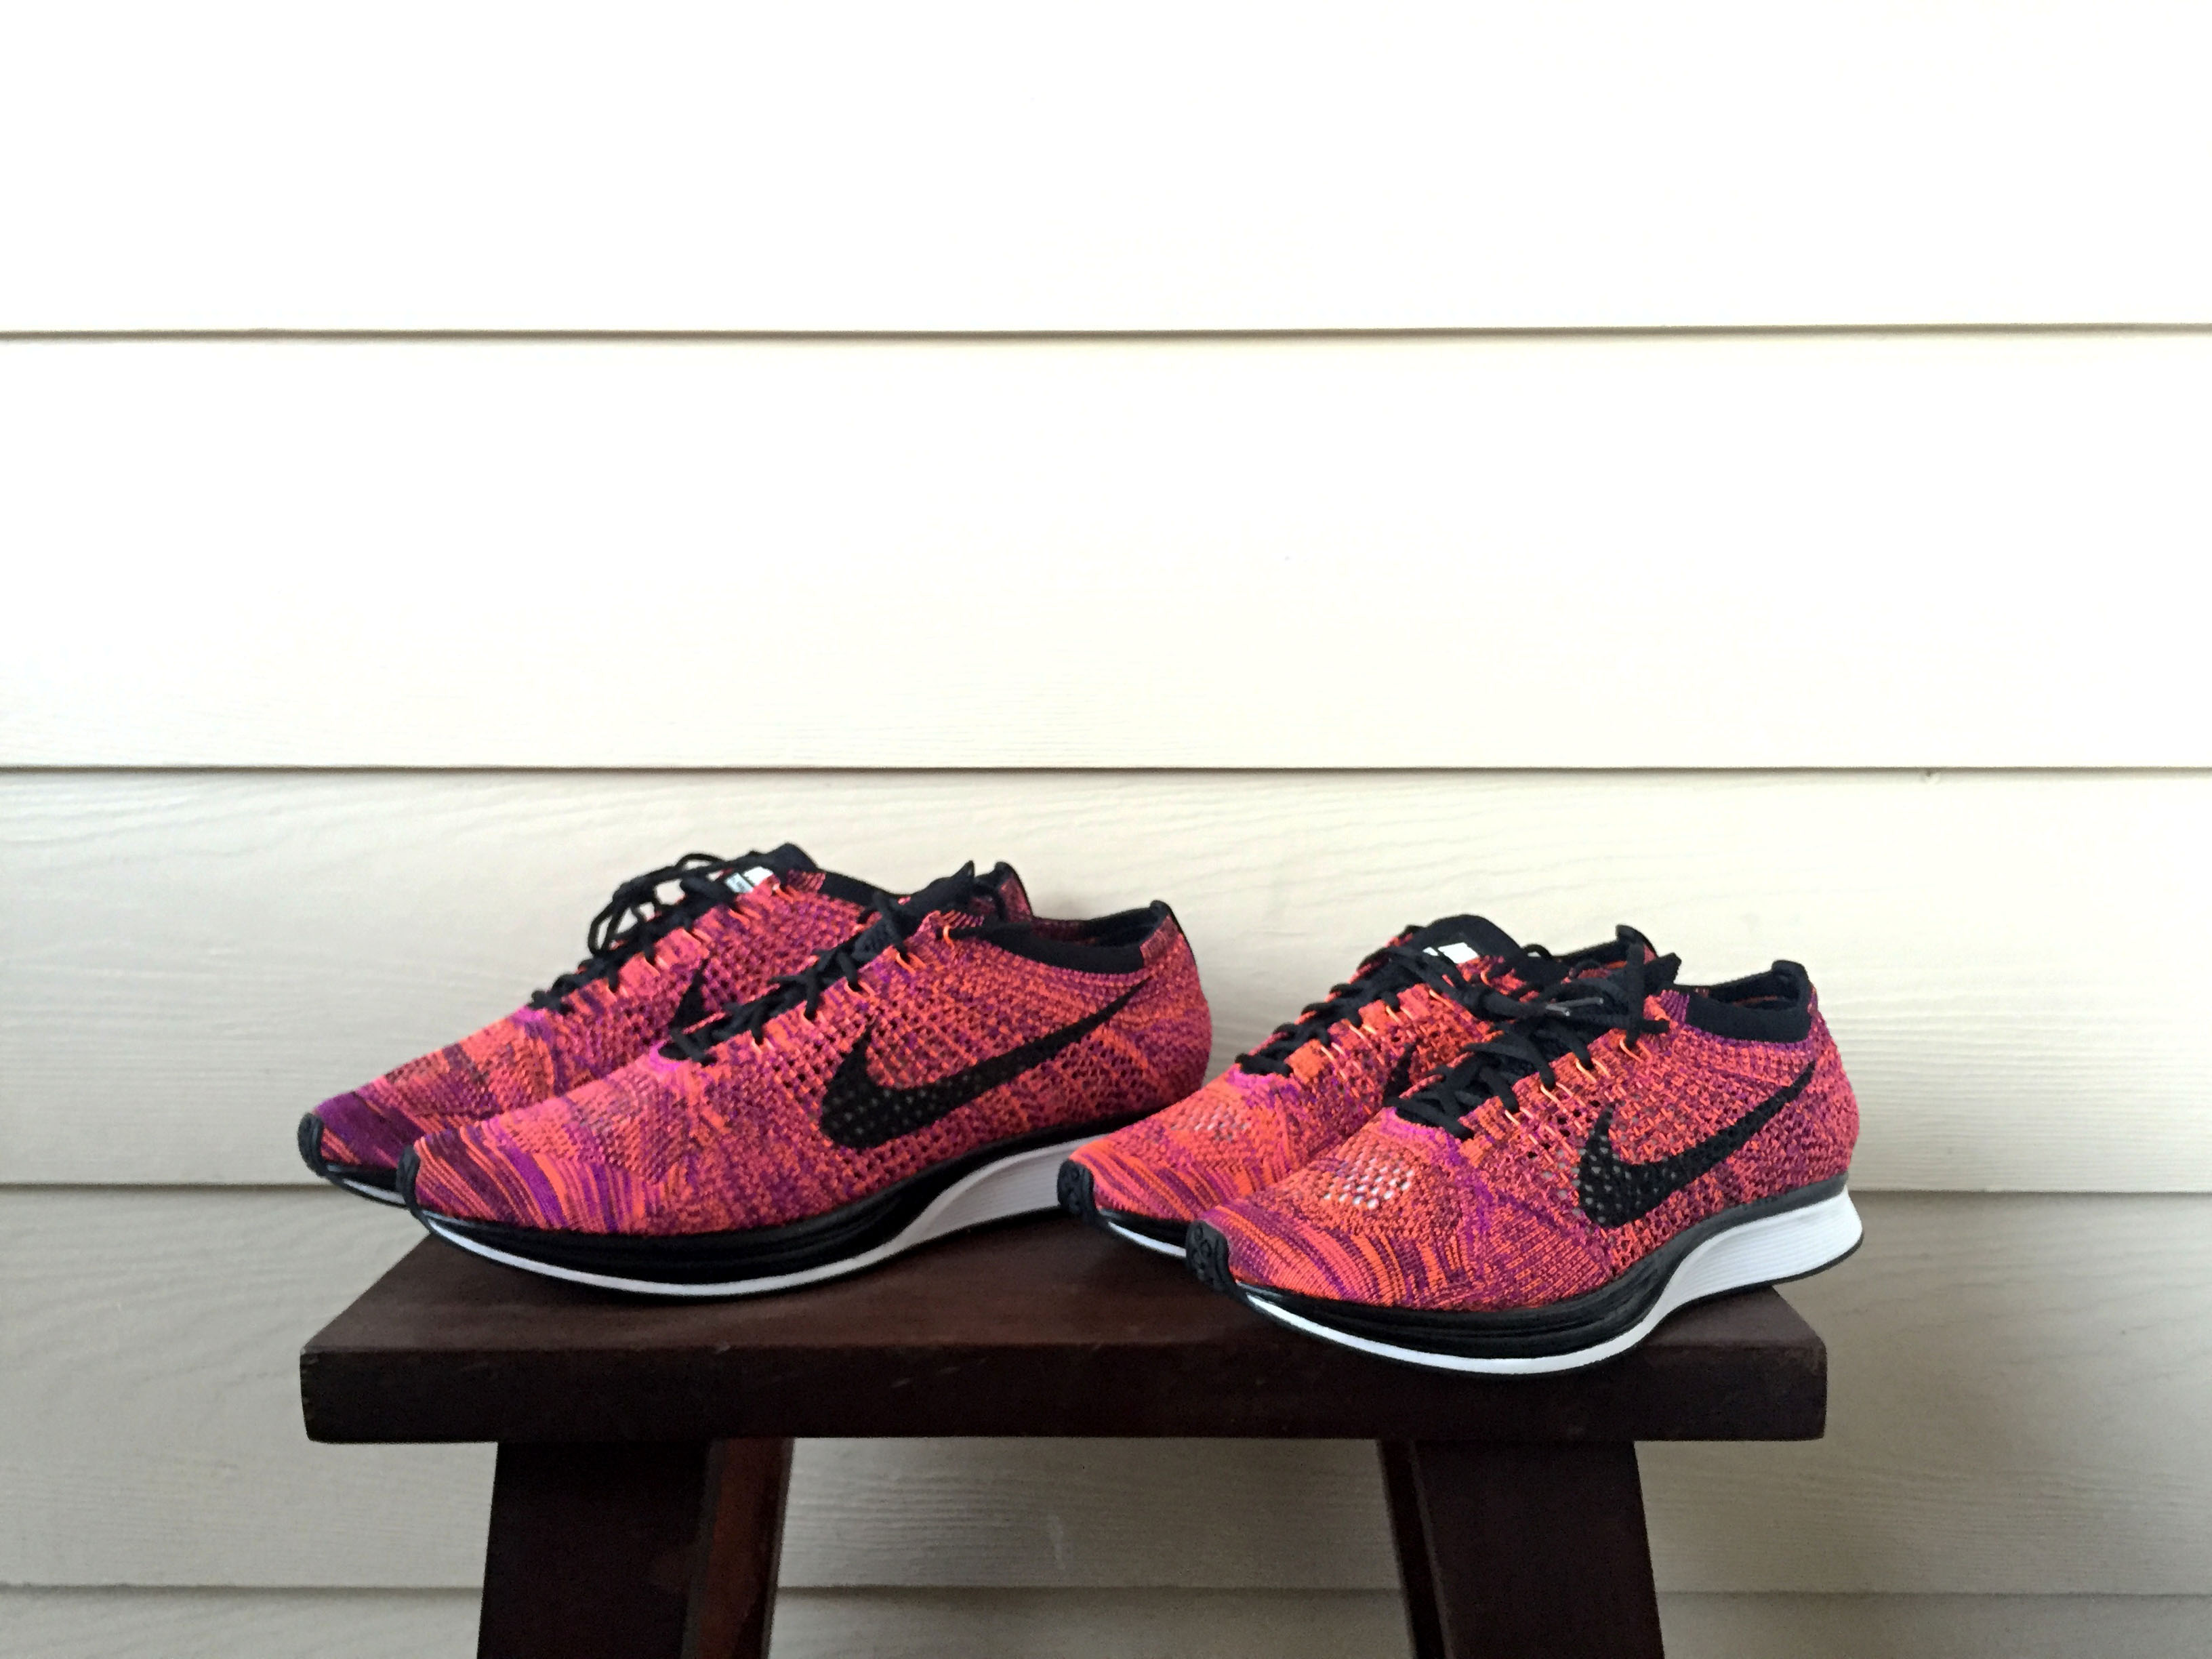 online store 95d2f 1b0b0 ... flyknit racer 6e727 270a2  low price just for kicks daniela gamboa  9b3b6 23d19